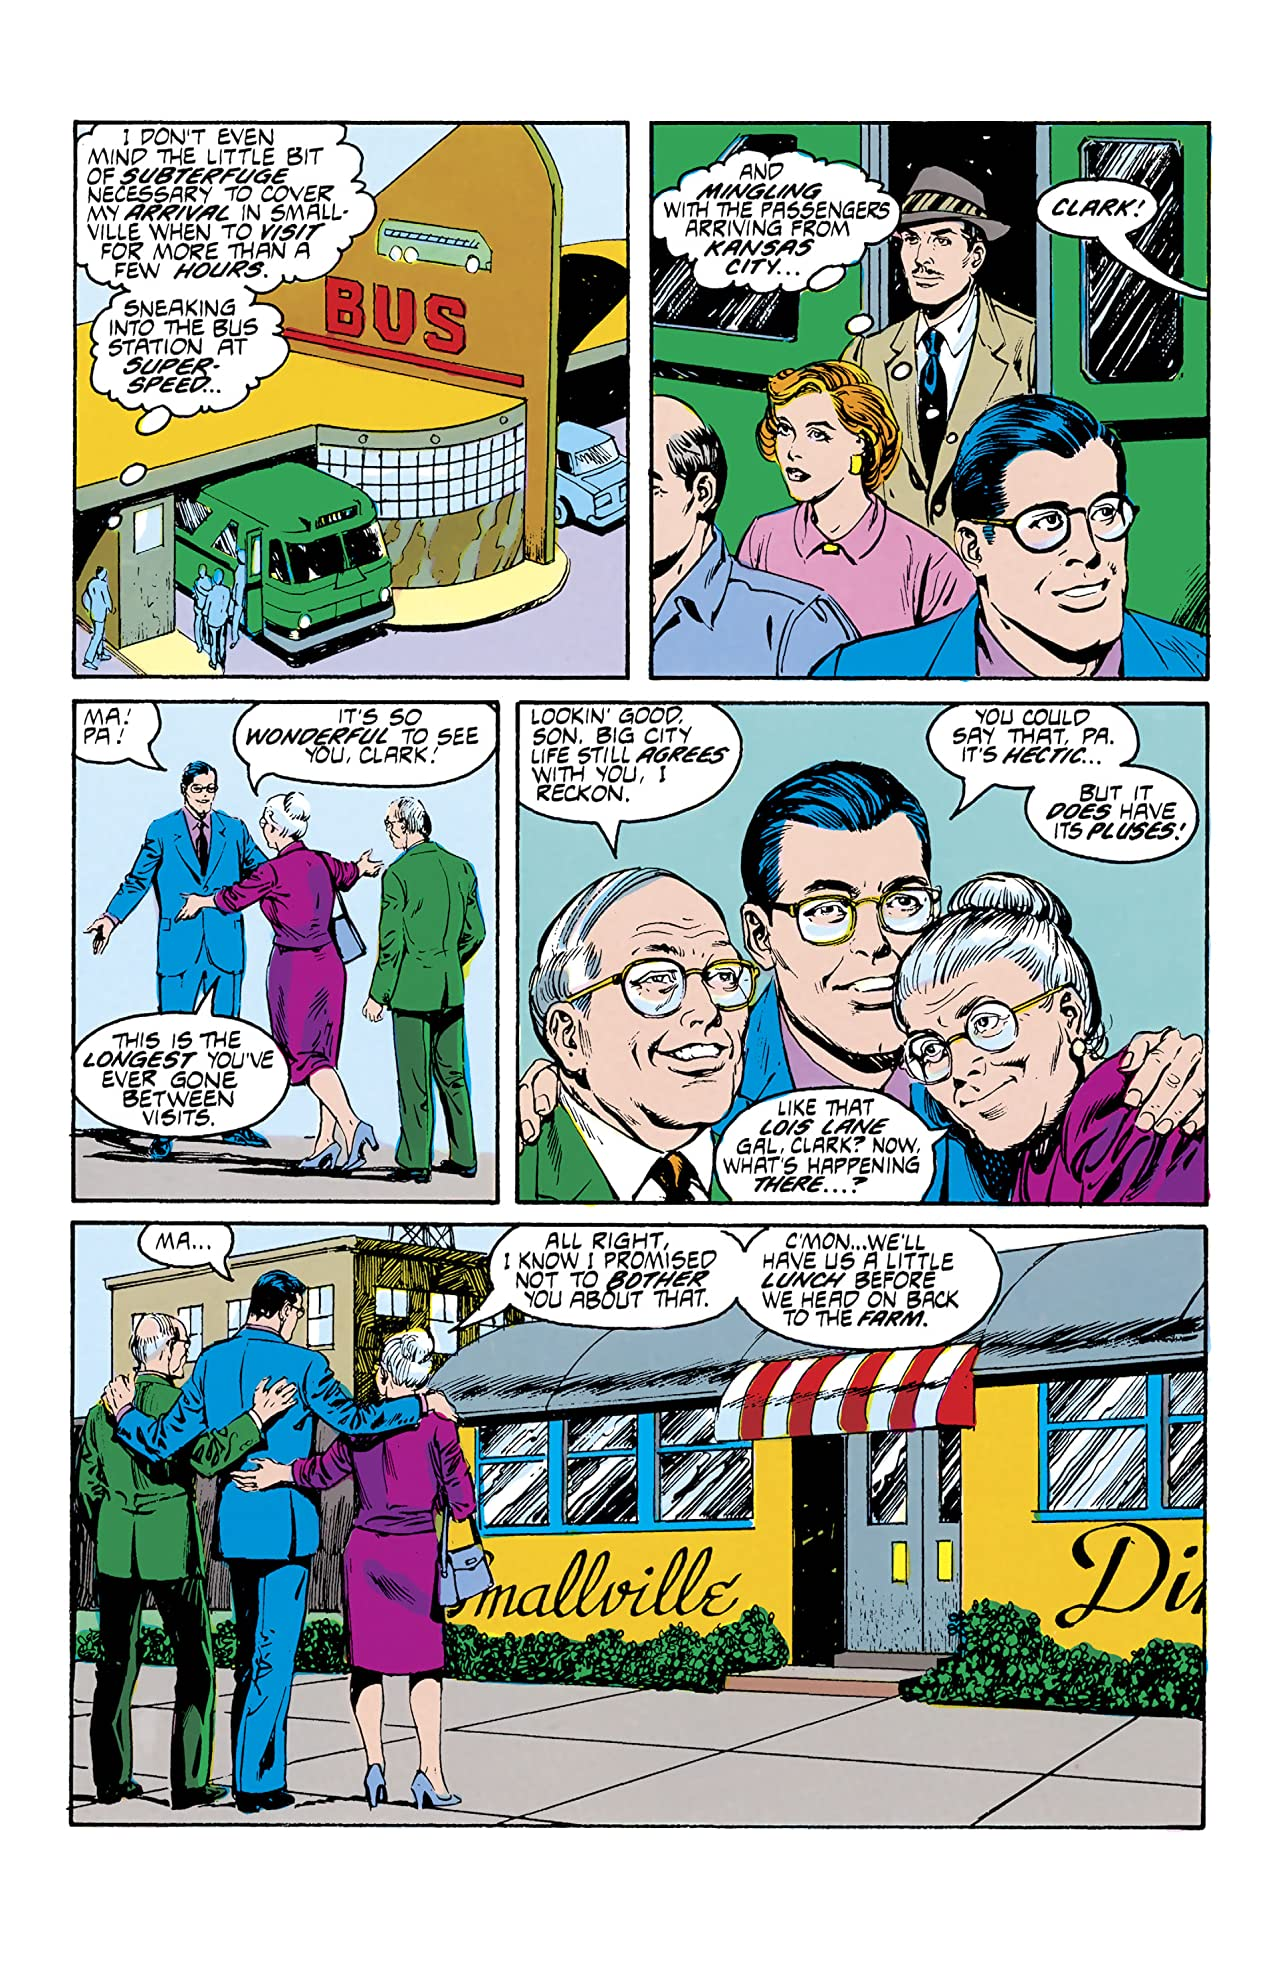 World of Smallville (1988) #1